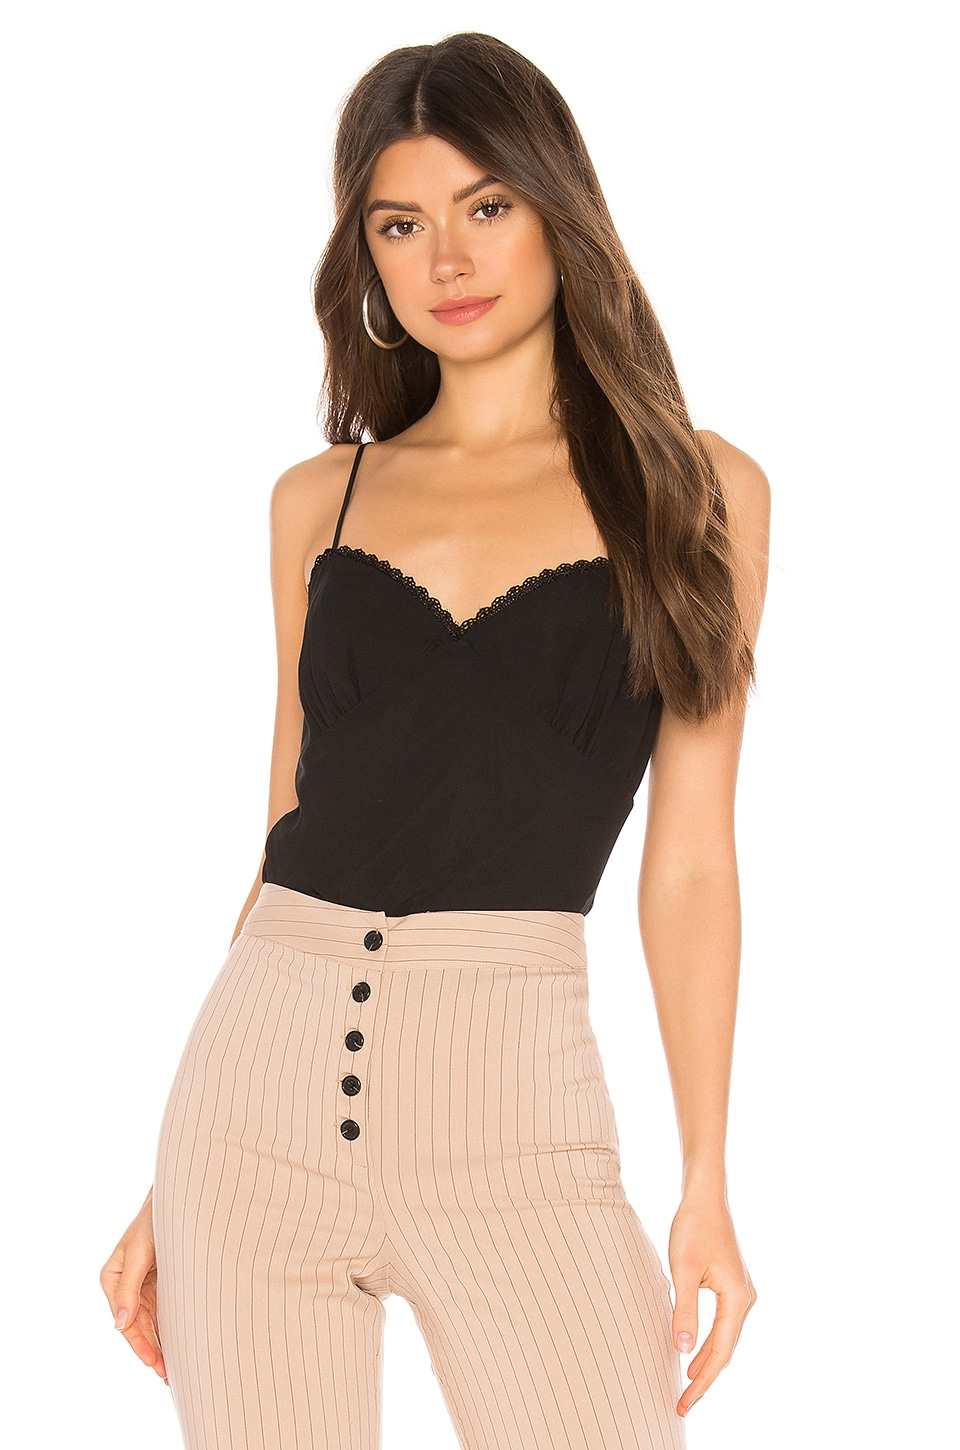 Privacy Please Larkspur Top in Black